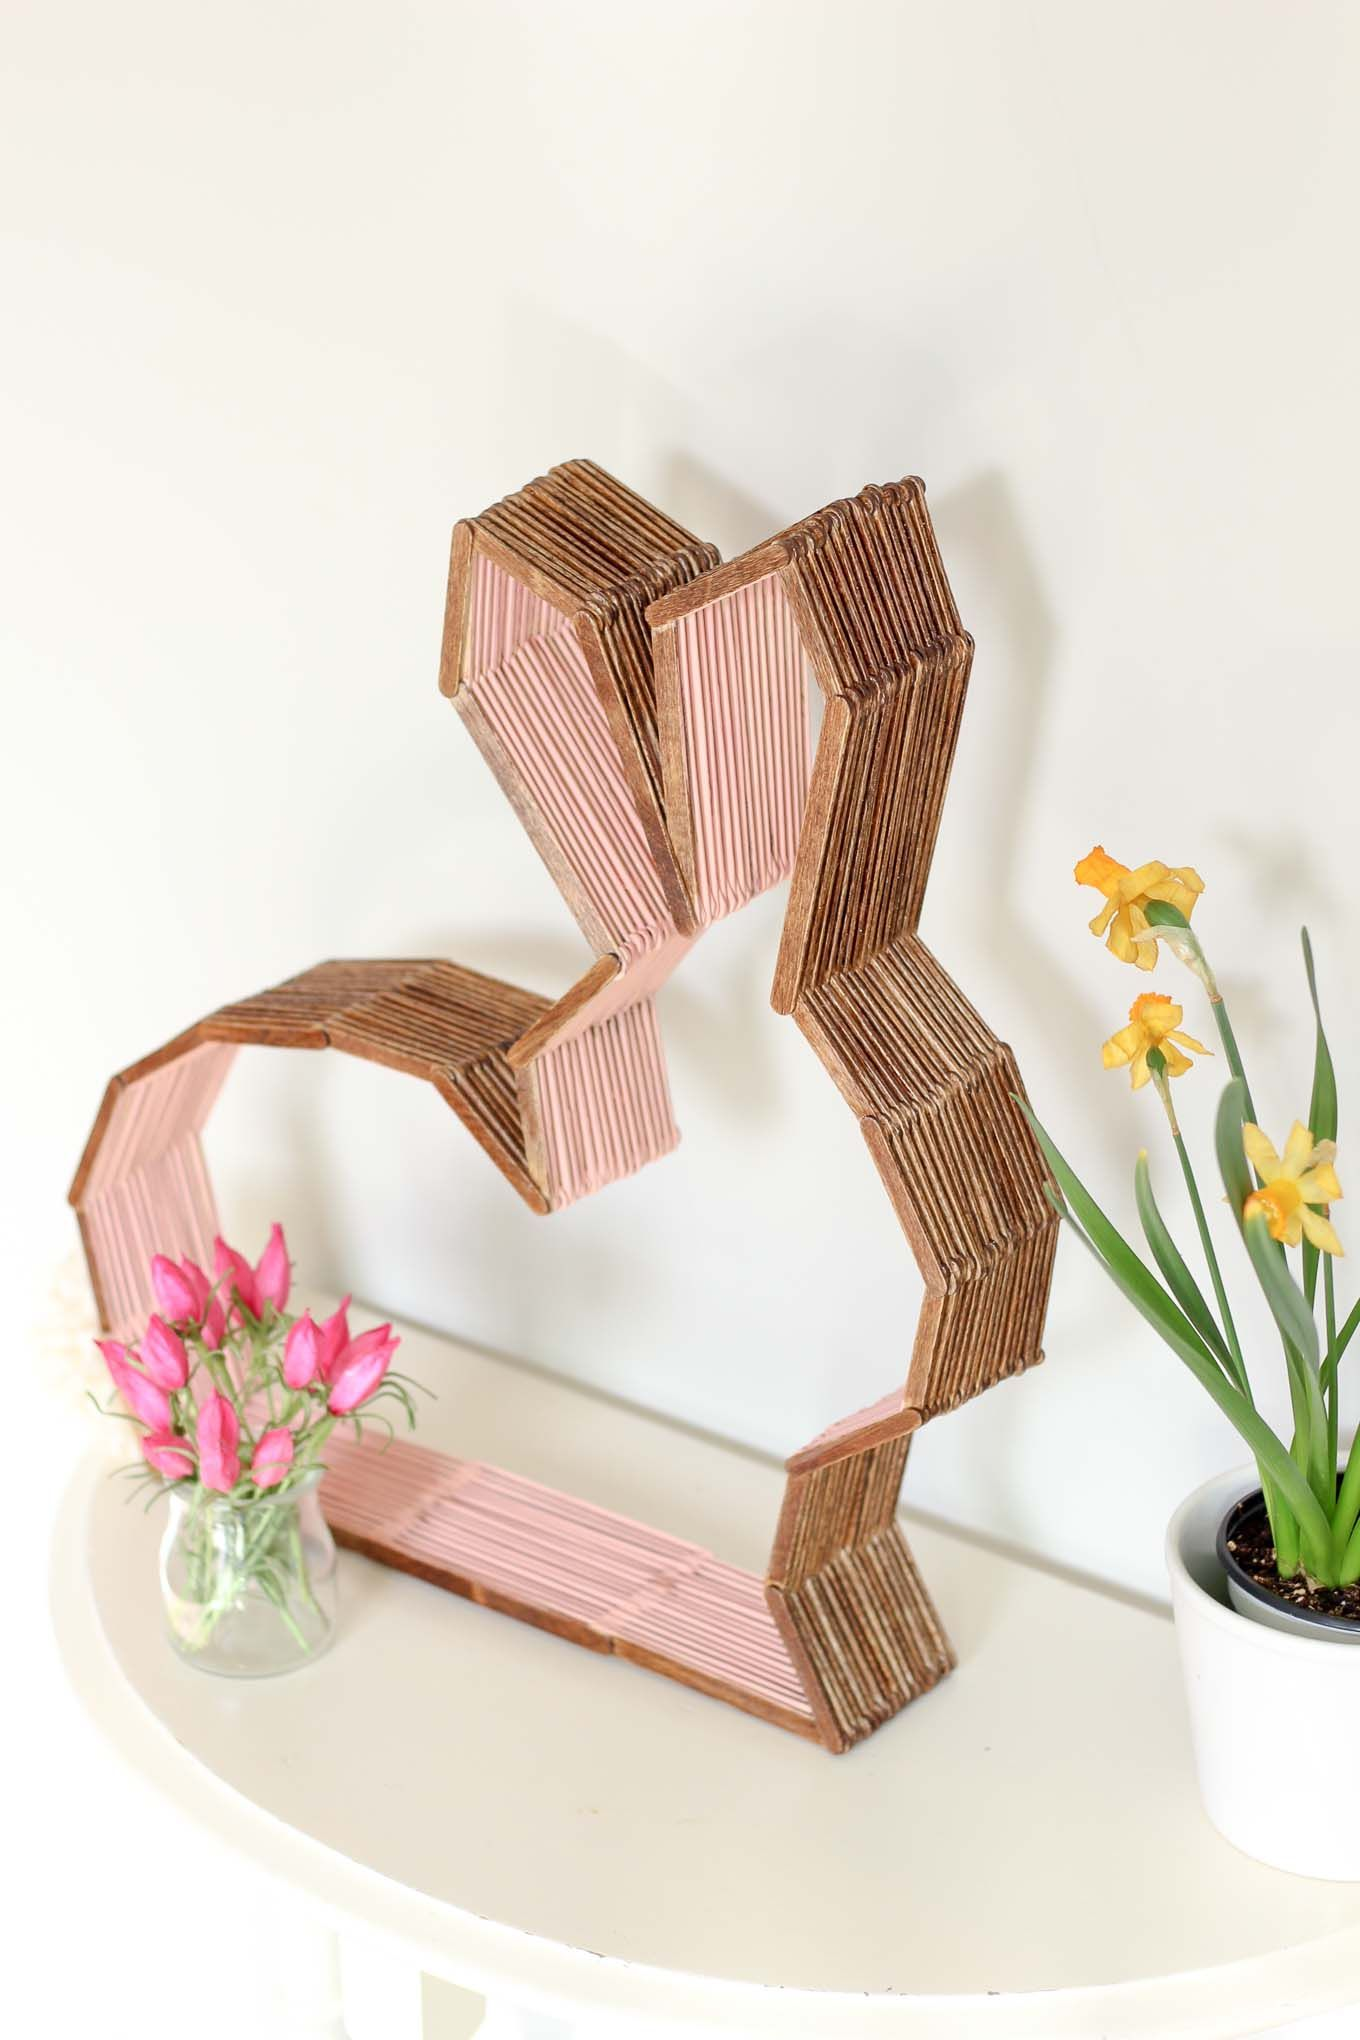 45 crafty ideas for home decor you can make yourself diy this bunny shelf makes a perfect easter craft idea for spring or diy nursery decor to enjoy year round make it out of popsicle sticks using the solutioingenieria Images